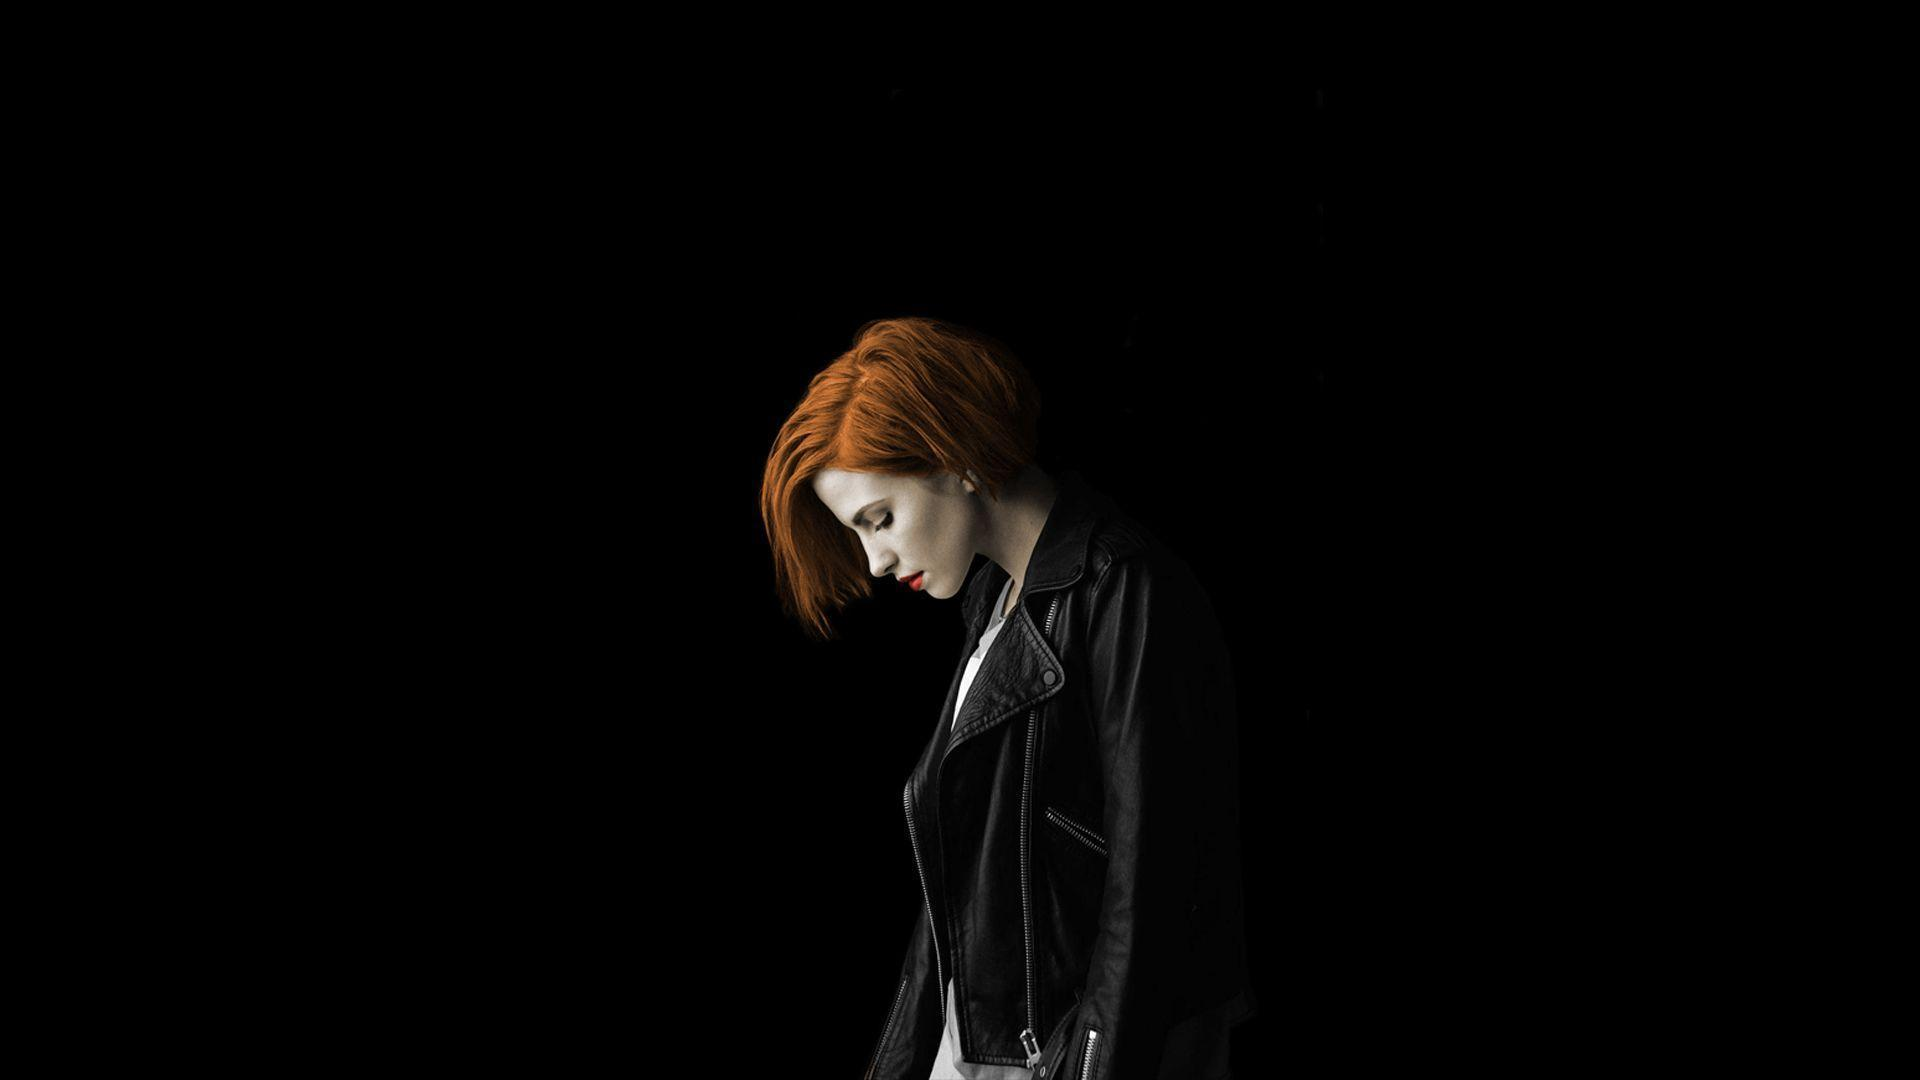 Hayley Williams Wallpapers 2016 1920x1080